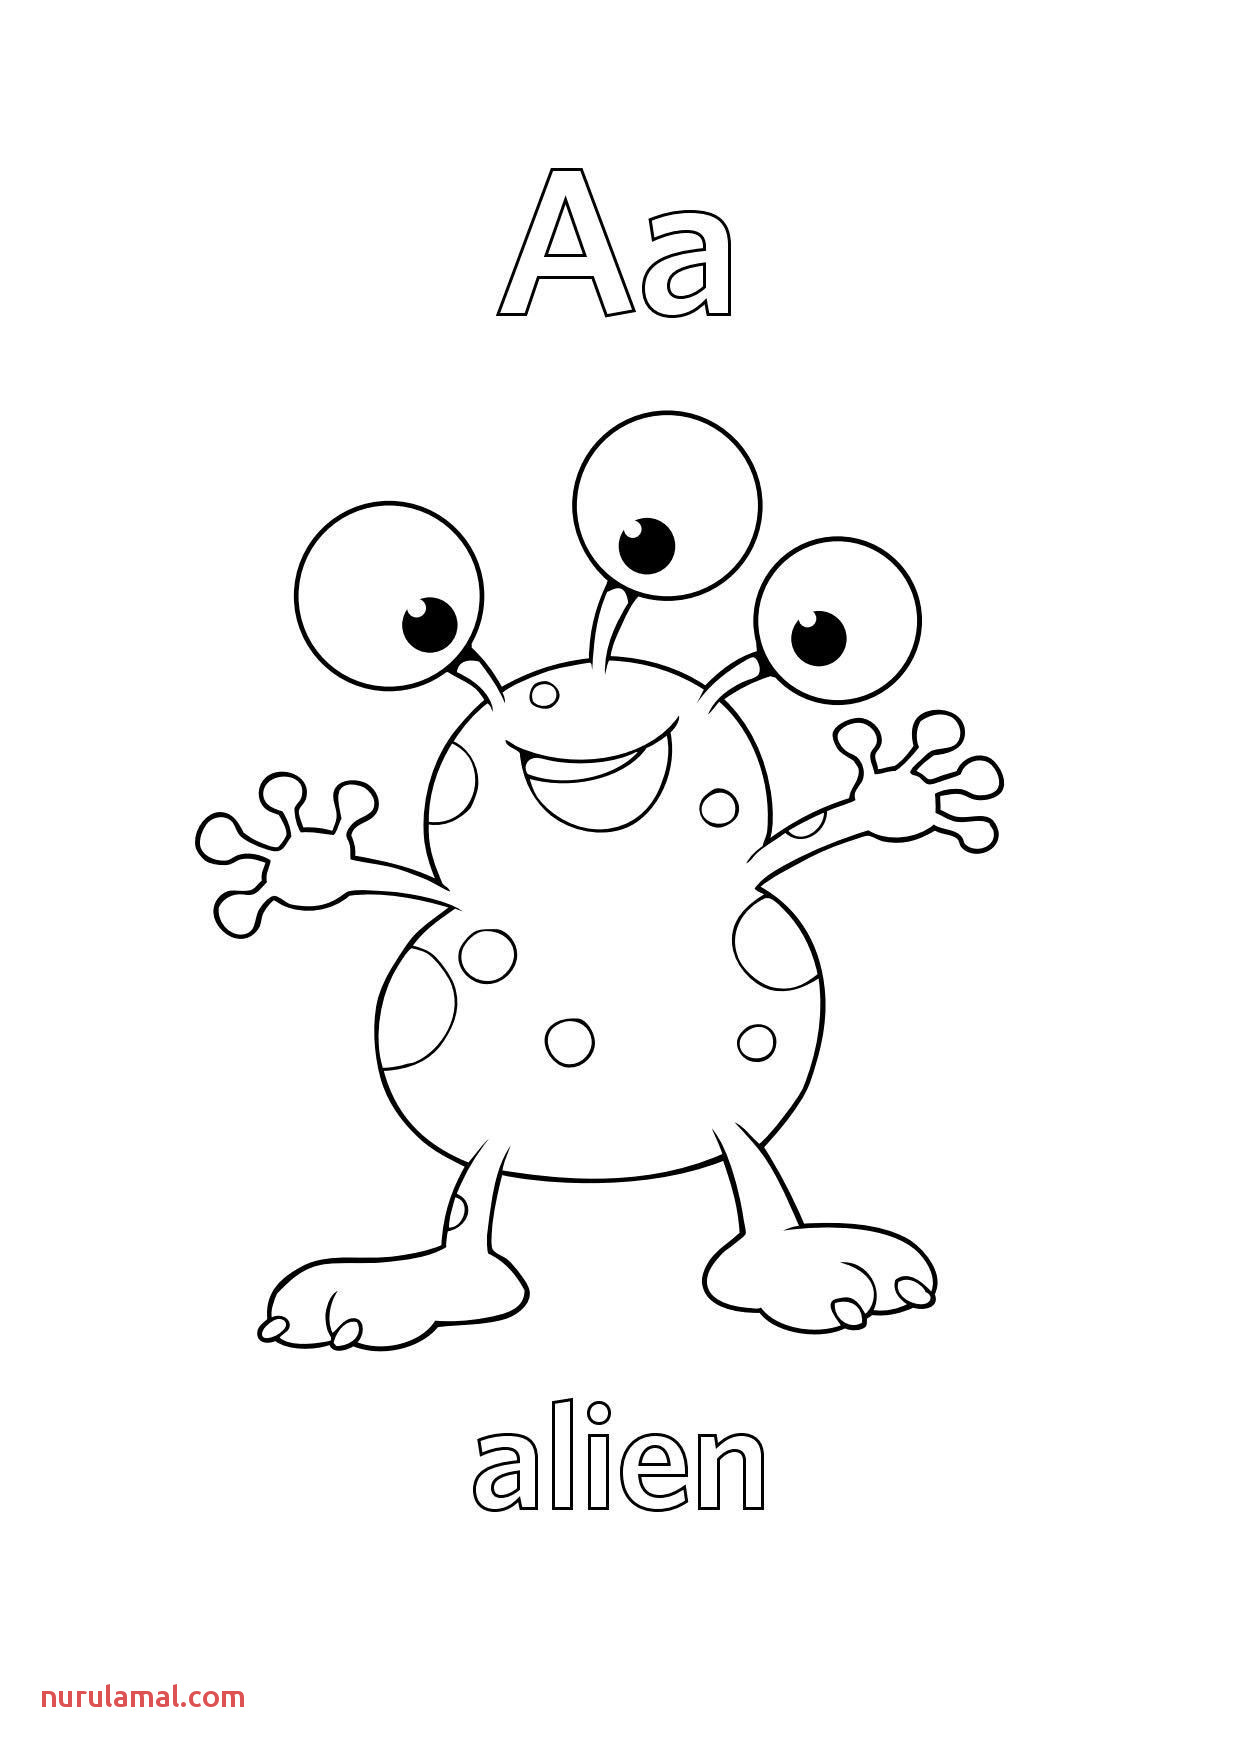 coloring alphabet letters upper and letter lowercase best of pin by pluscoloring on free printable colouring pictures flintstones book thanksgiving color number frozen games